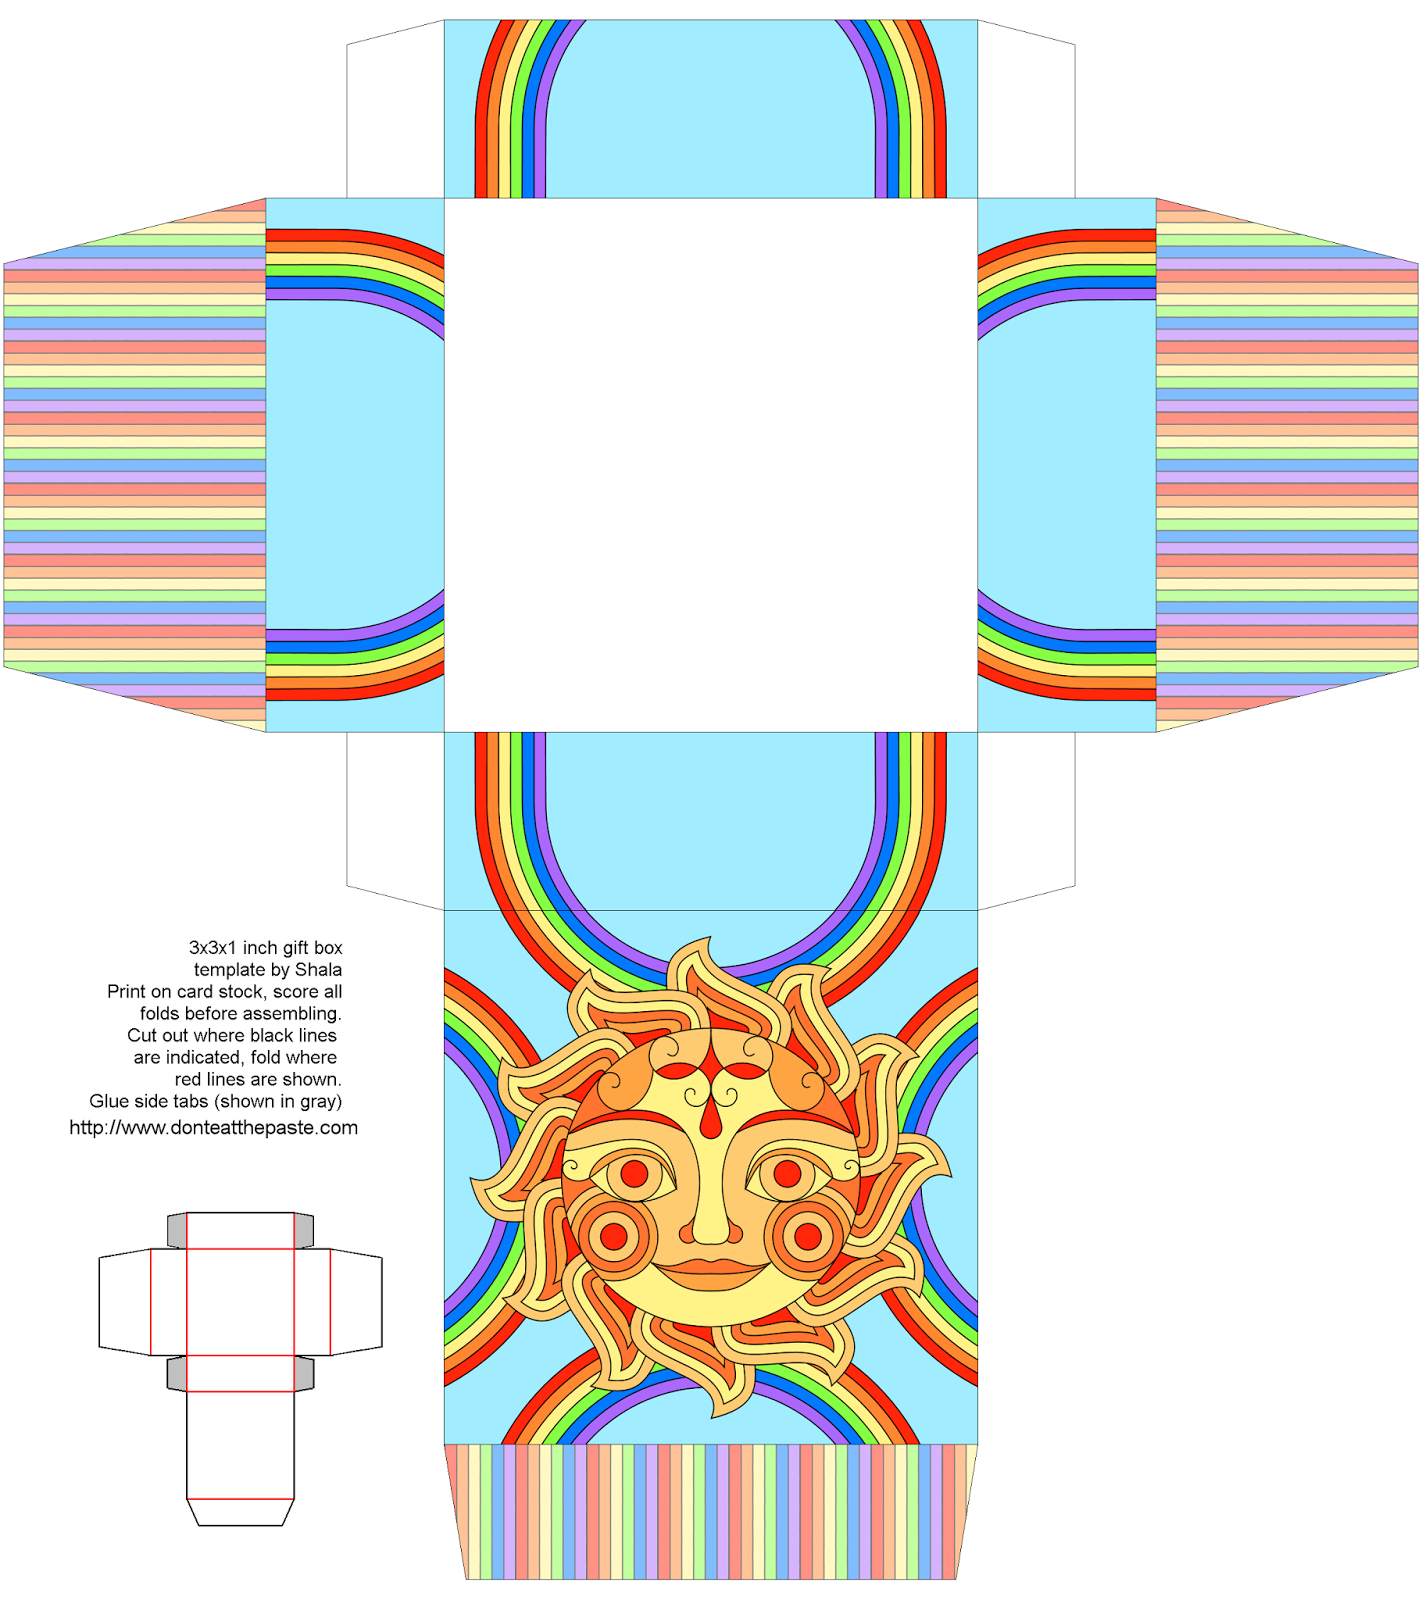 Printable groovy sun box #gifts #papercrafts #rainbows